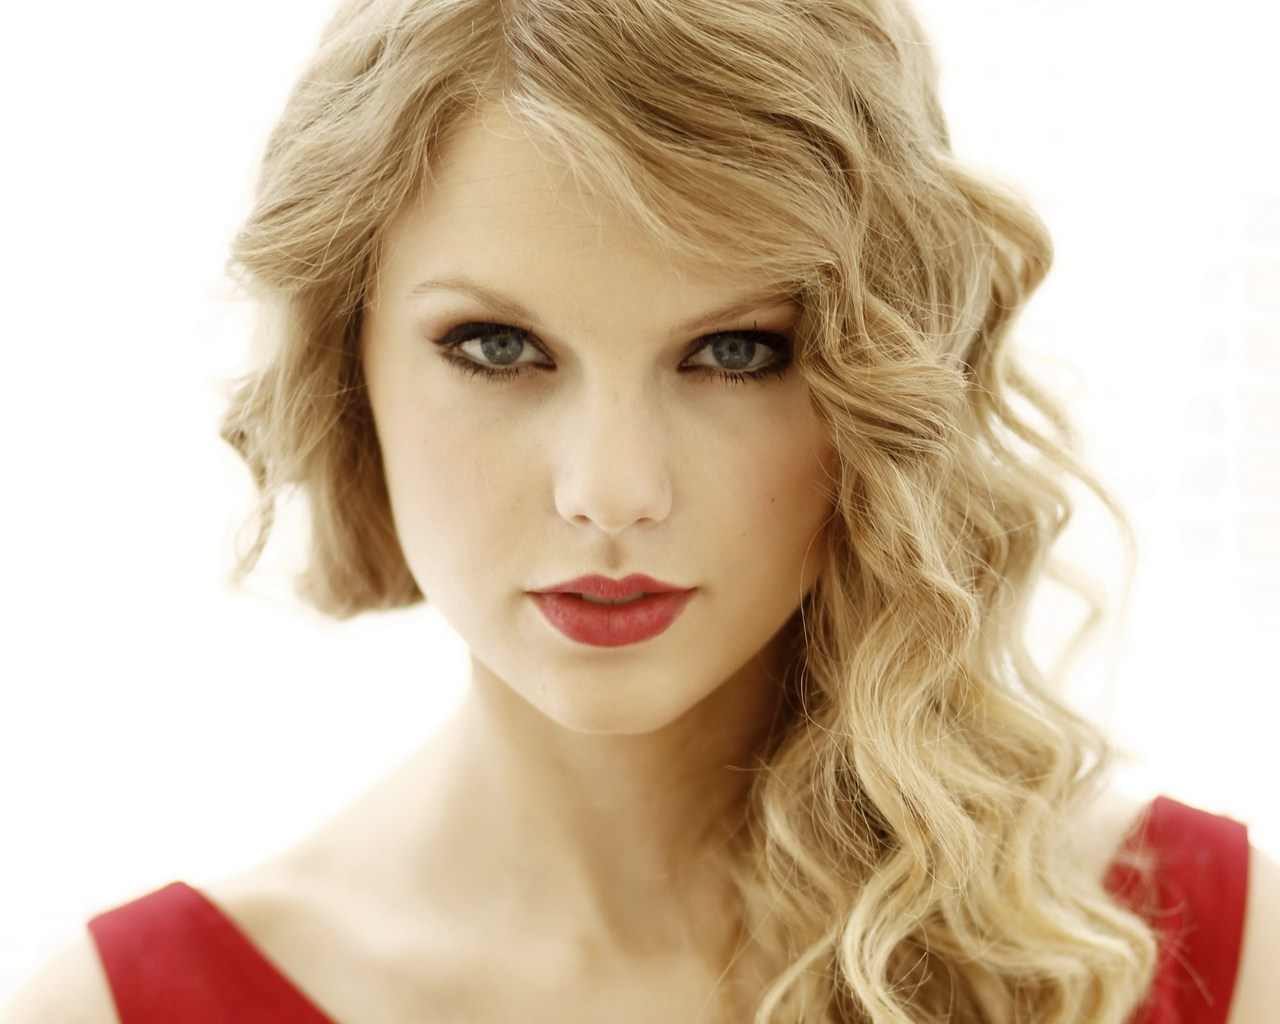 taylor swift height weight age biography affairs